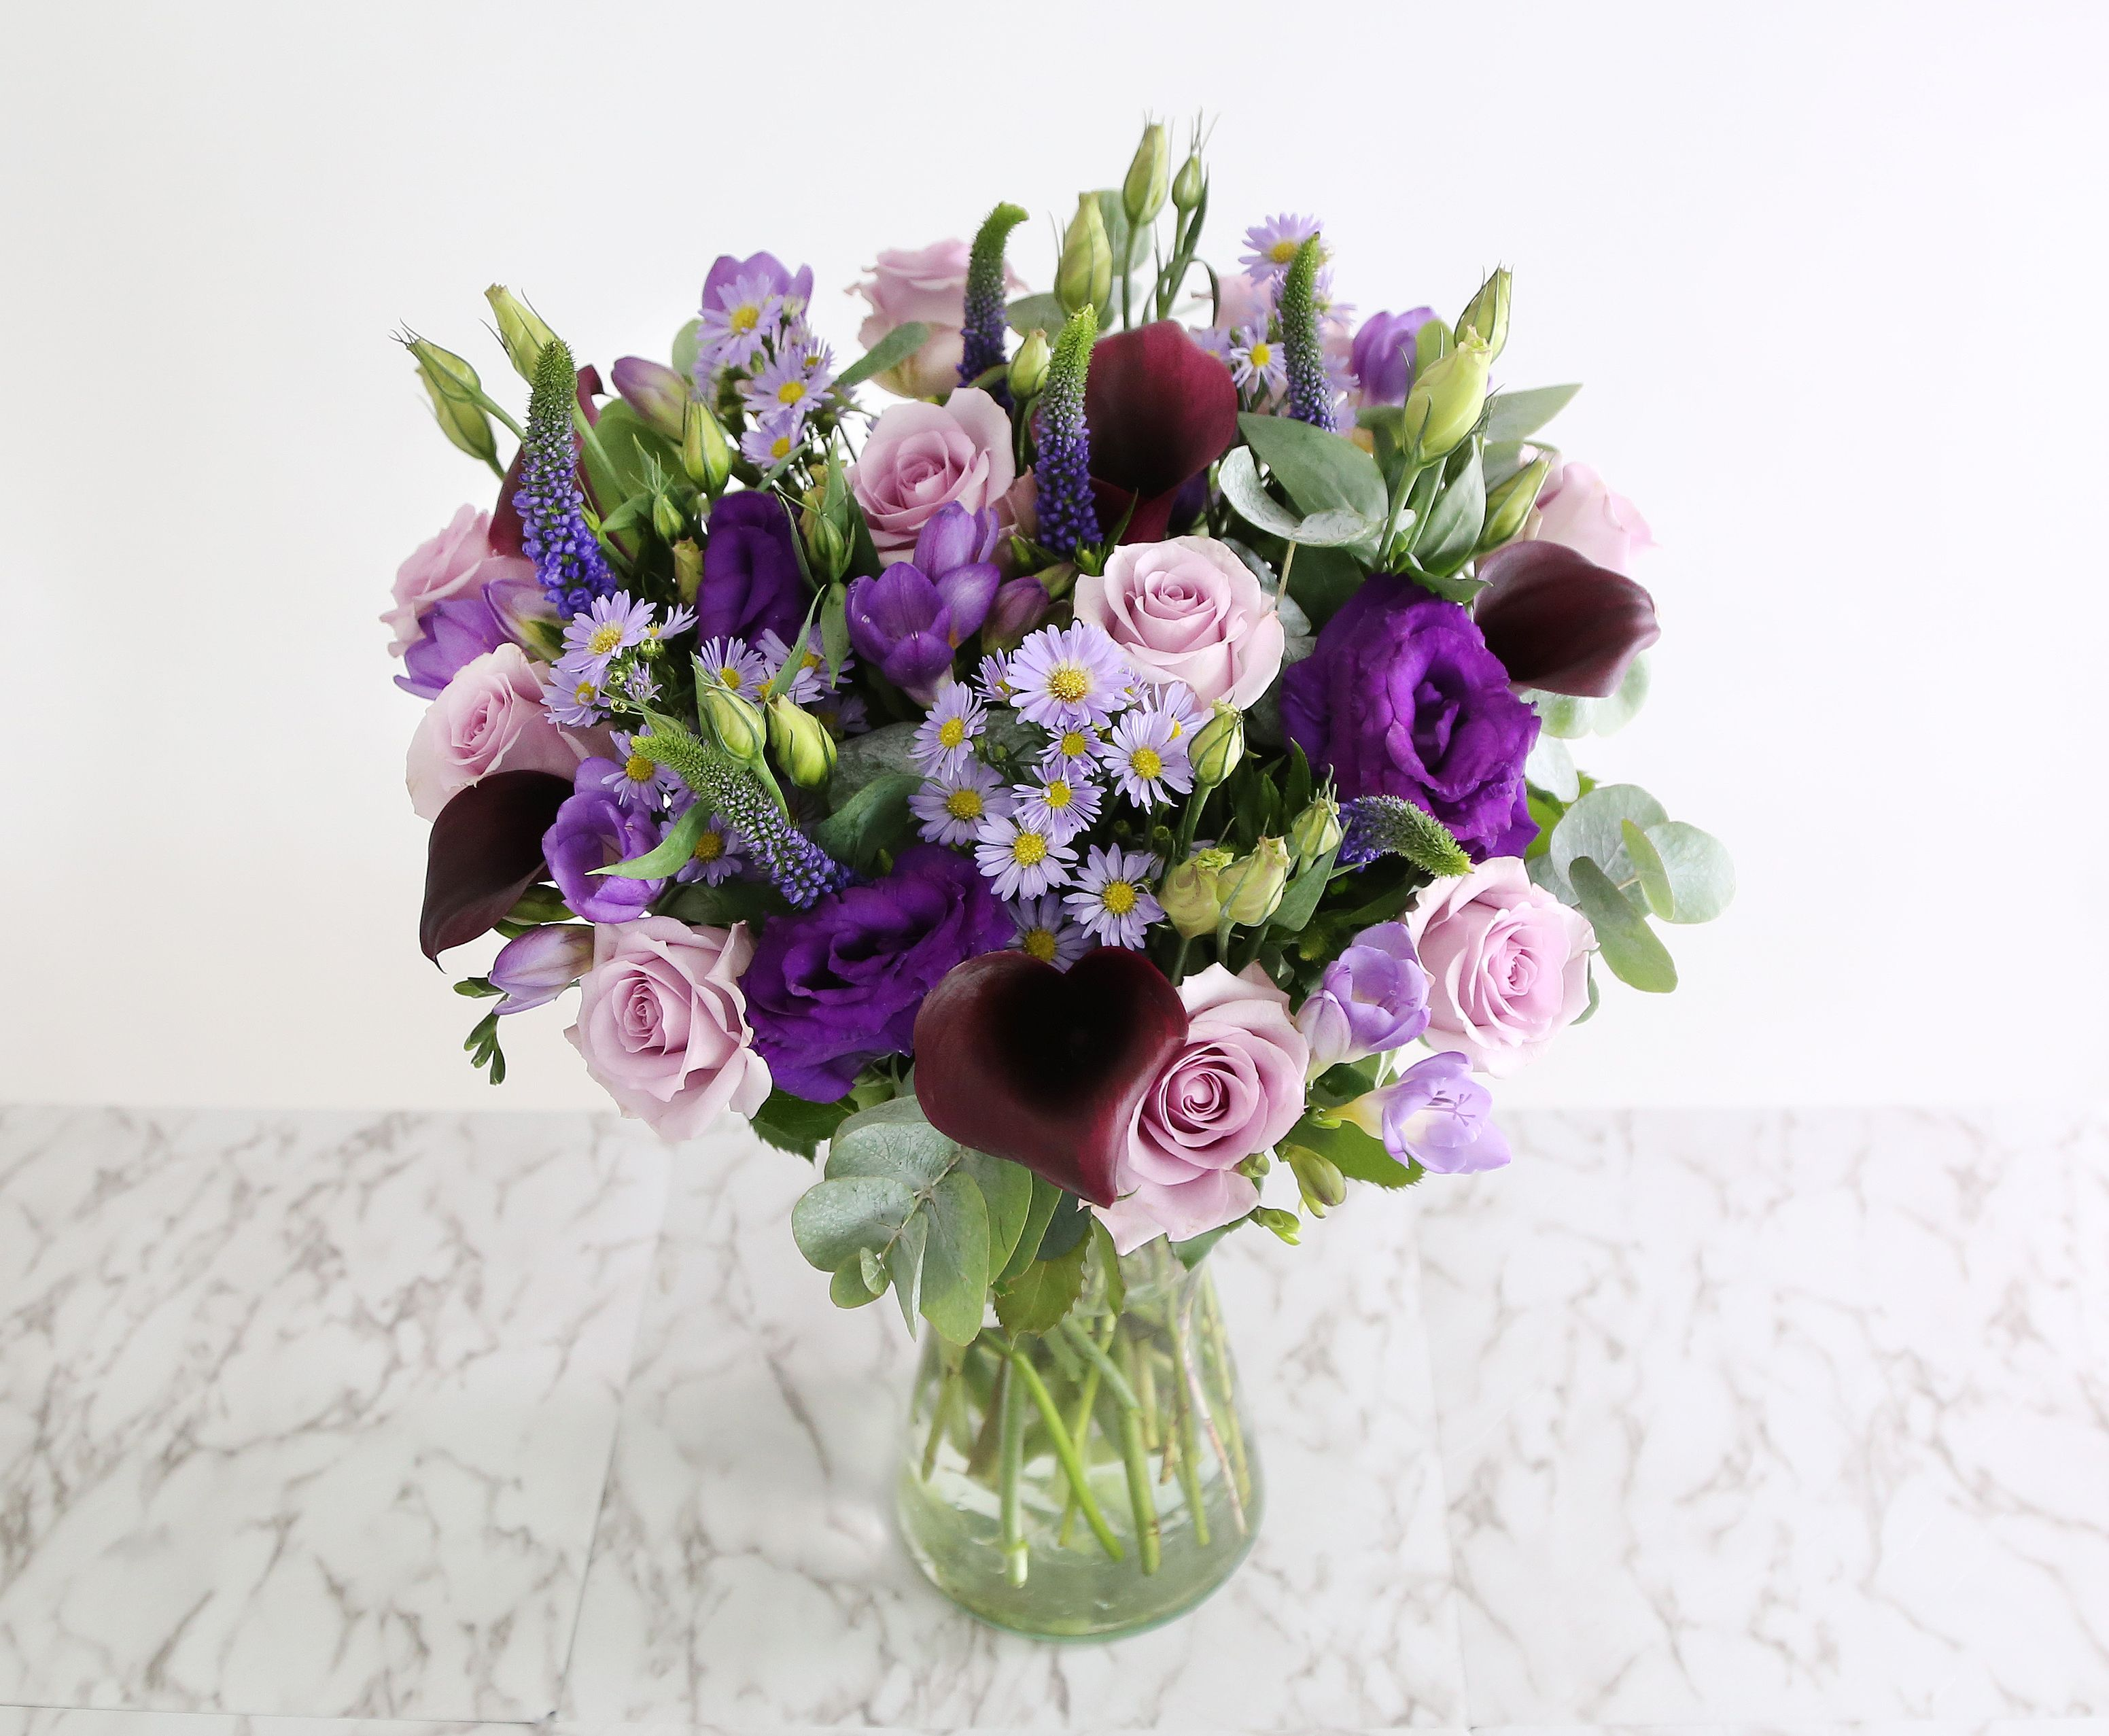 Purple Haze Bouquet 10 Rose Ocean Song 4 Blue Lisianthus 6 Purple Veronica 4 Lilac Aster 6 P Flowers Delivered Flower Delivery Flower Arrangements